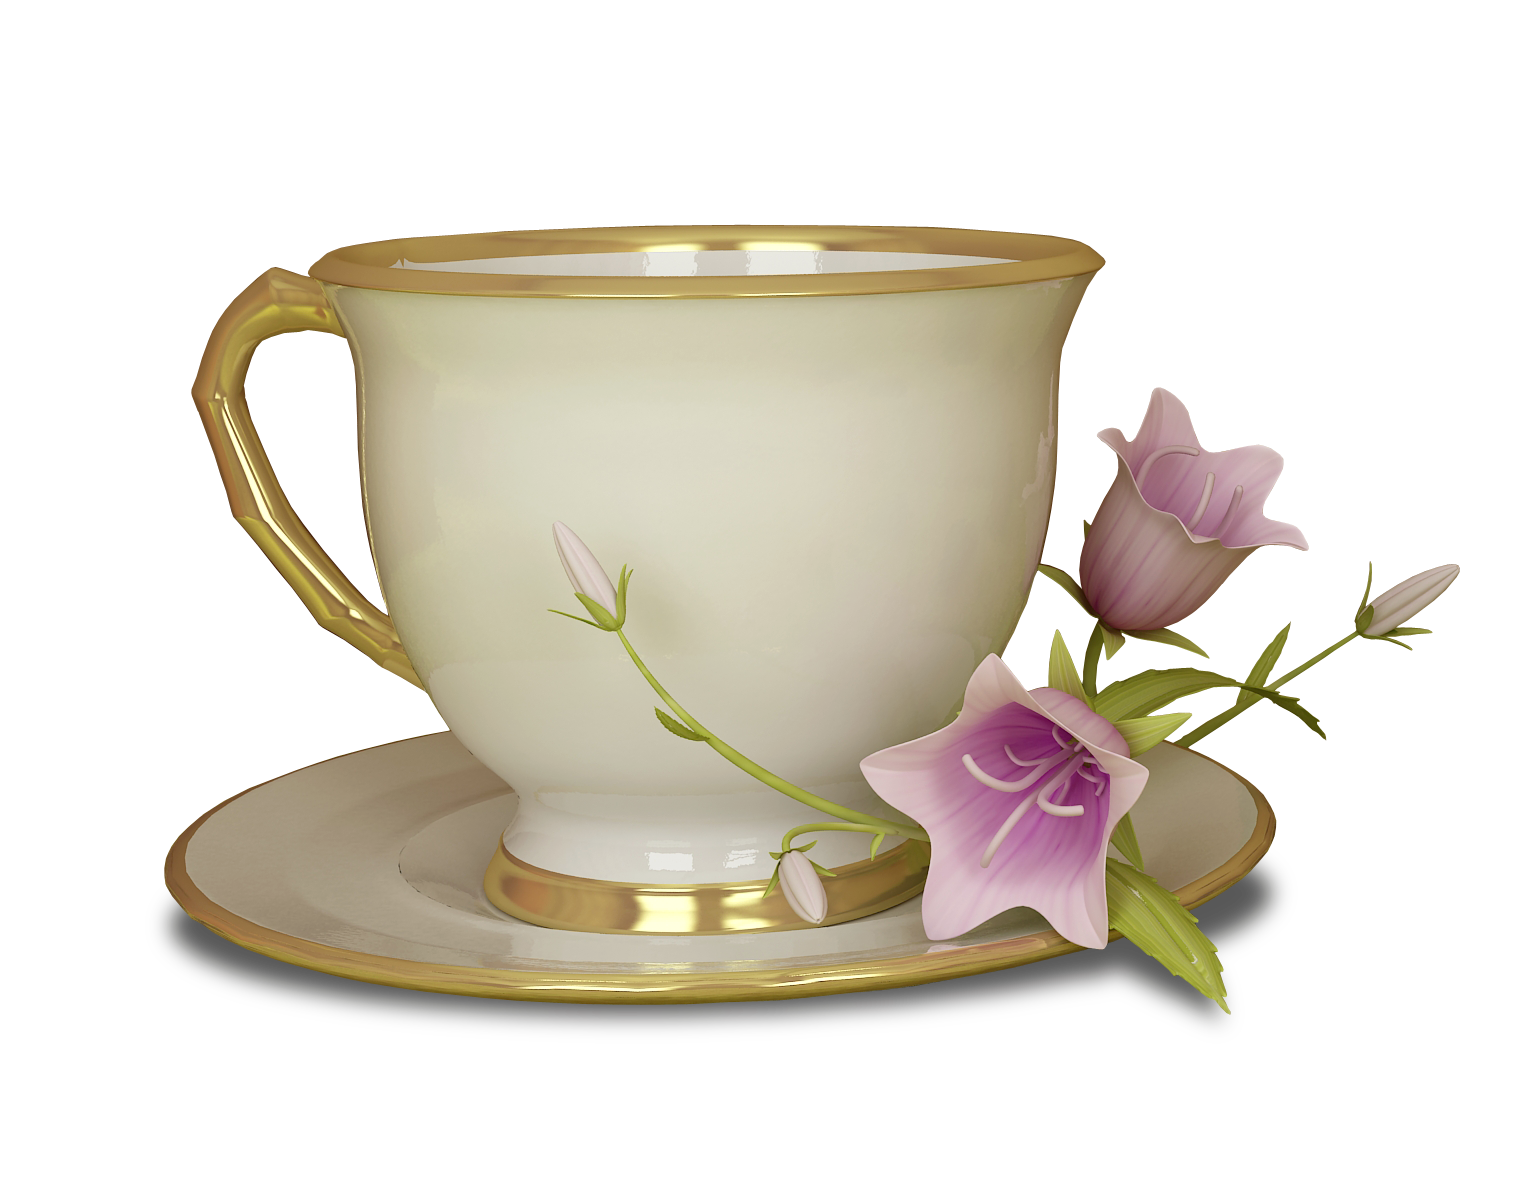 Floral clipart teacup.  collection of transparent